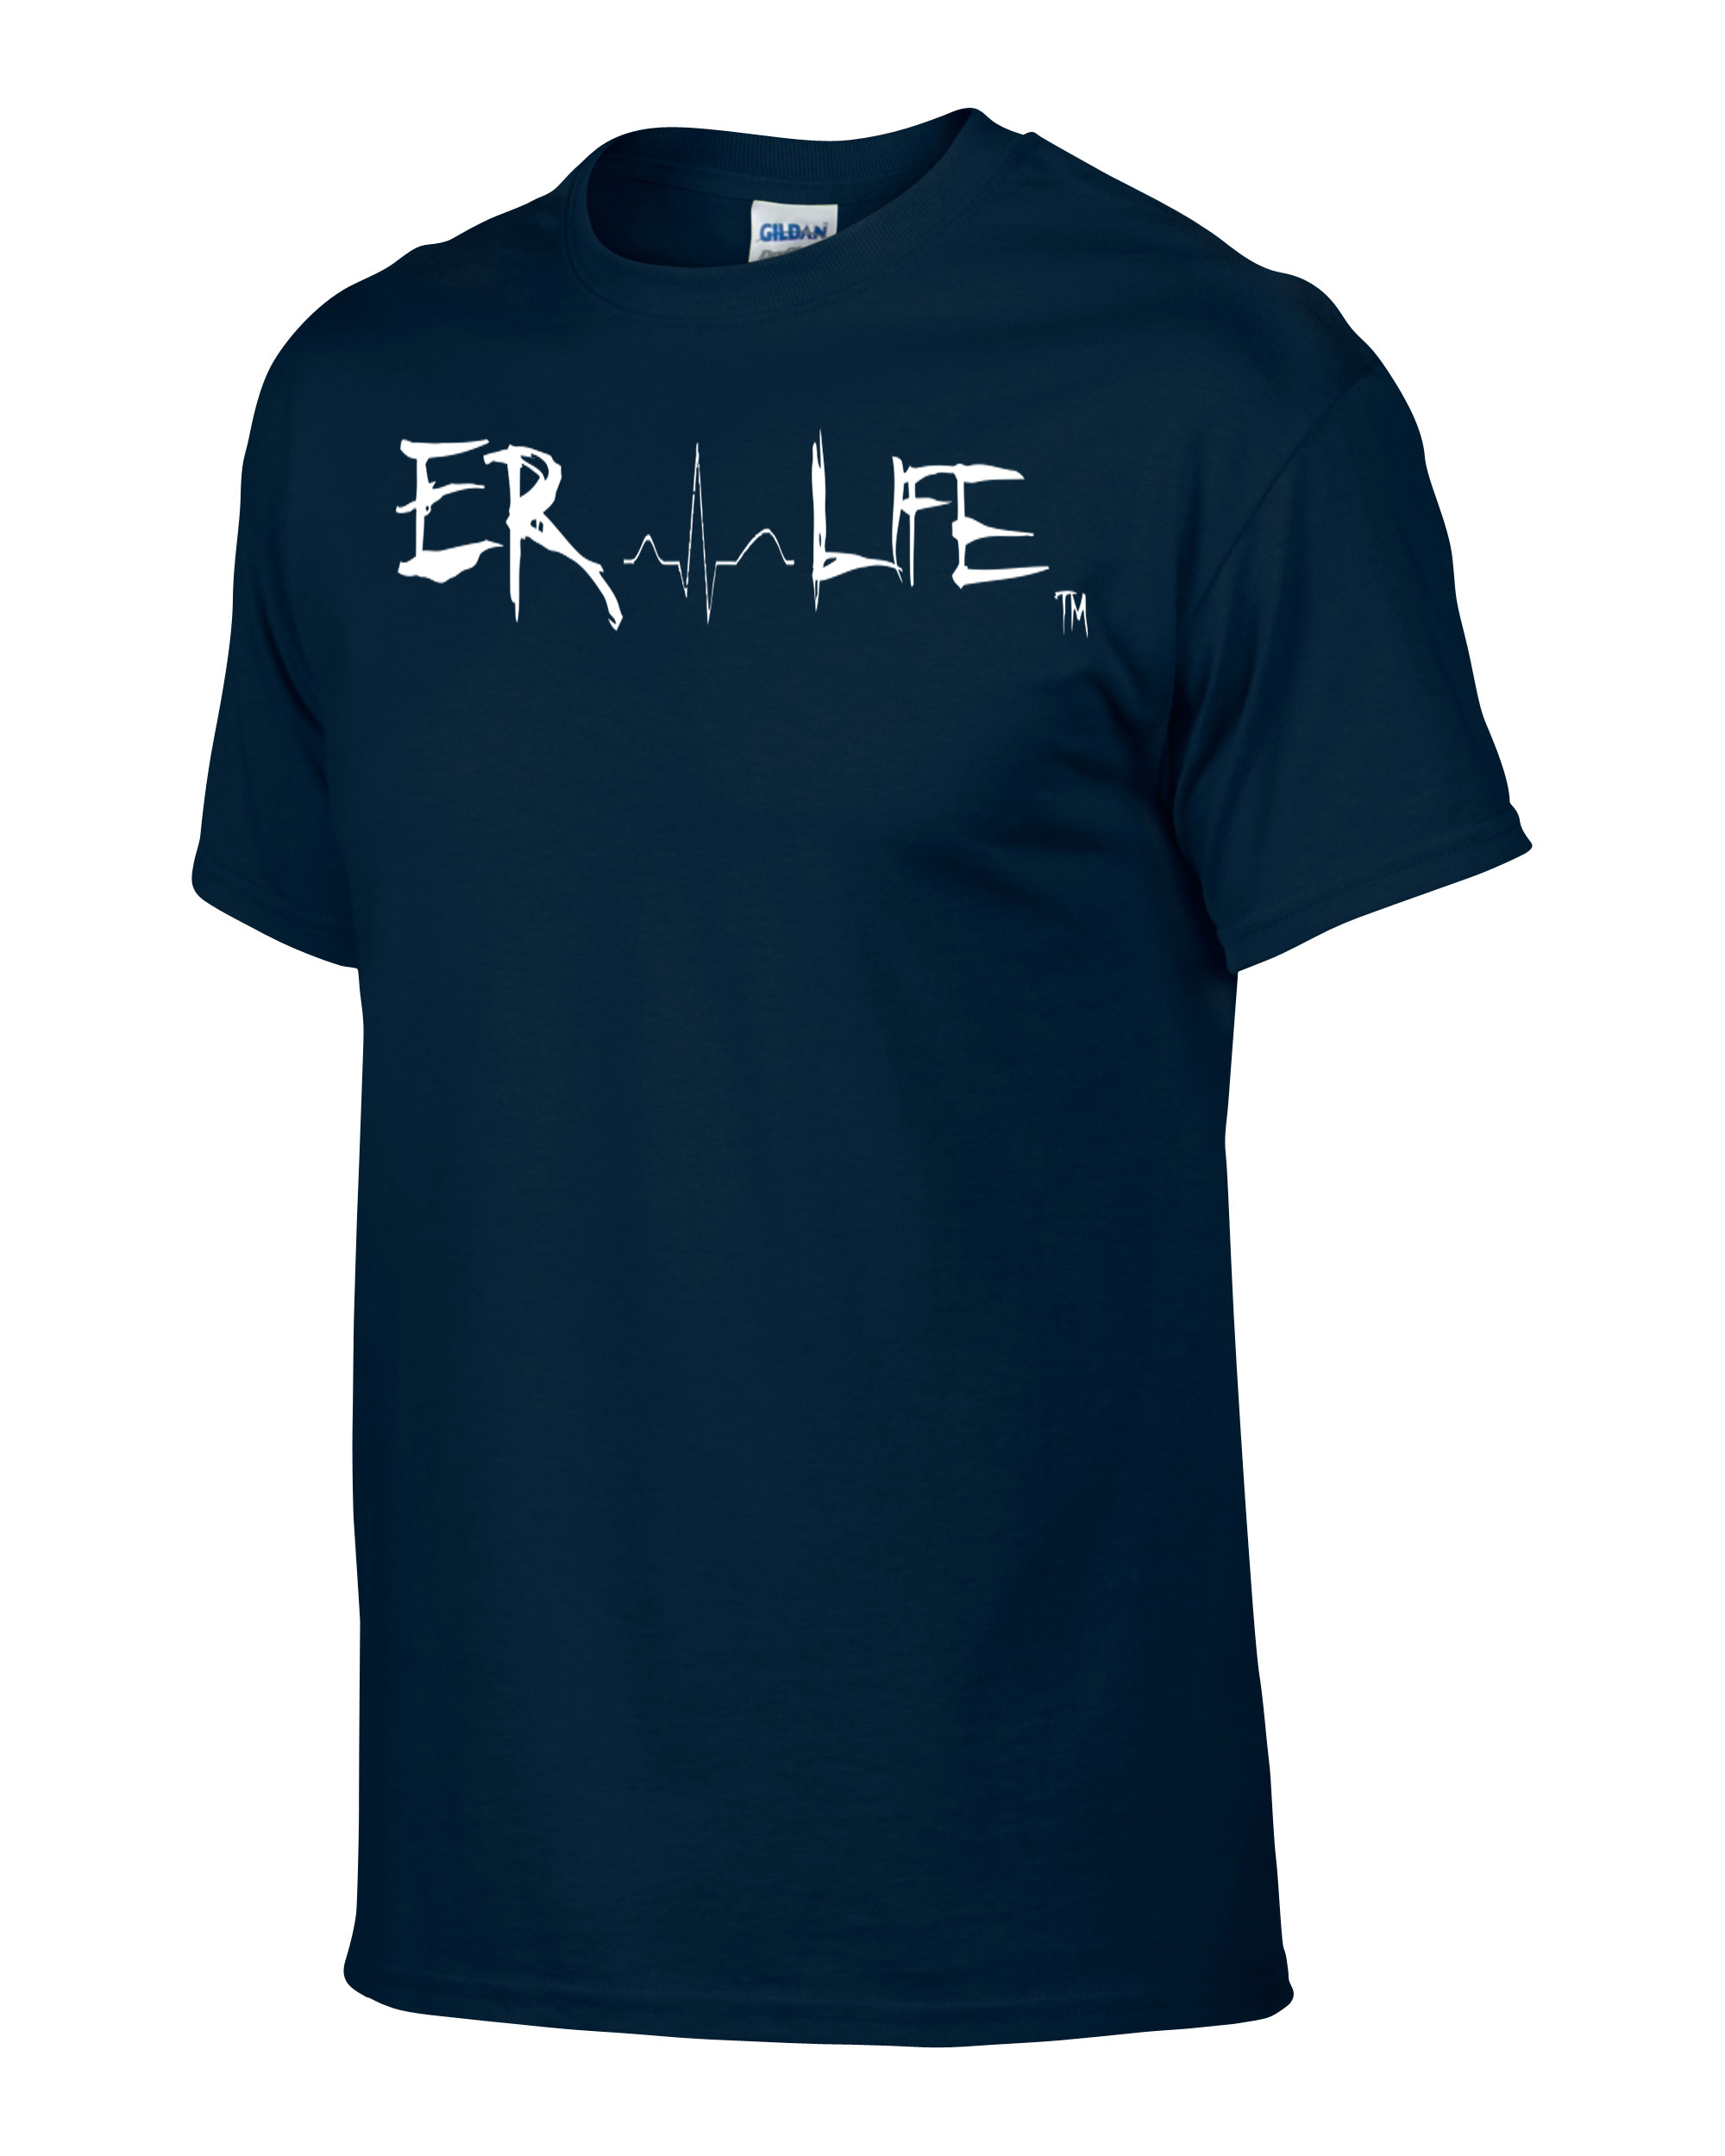 ER Life Navy Shirt Side